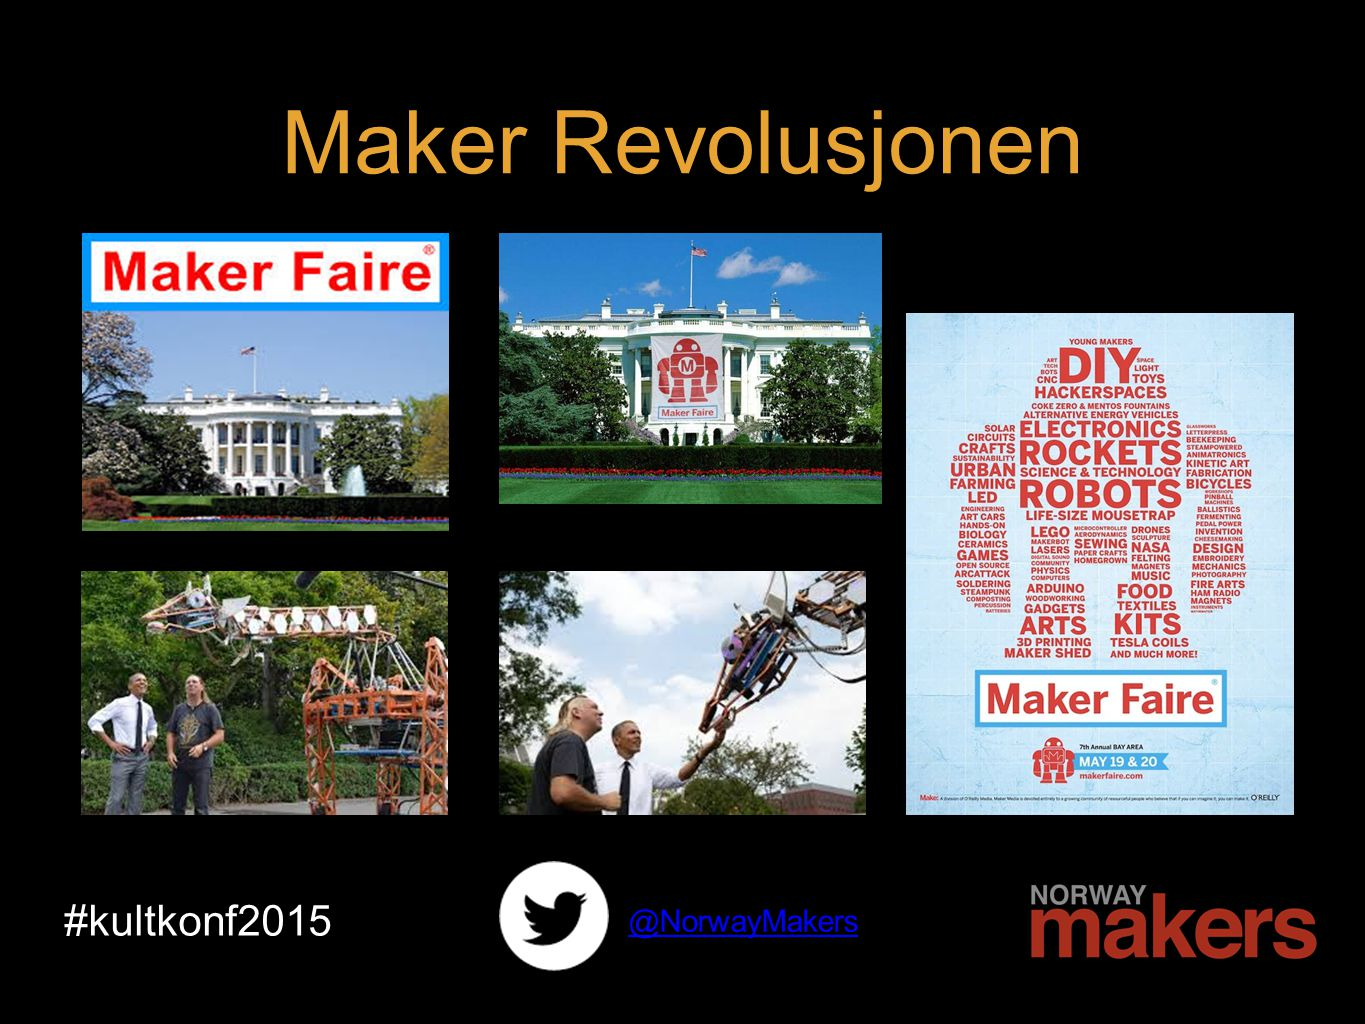 #kultkonf2015 @NorwayMakers Maker Revolusjonen